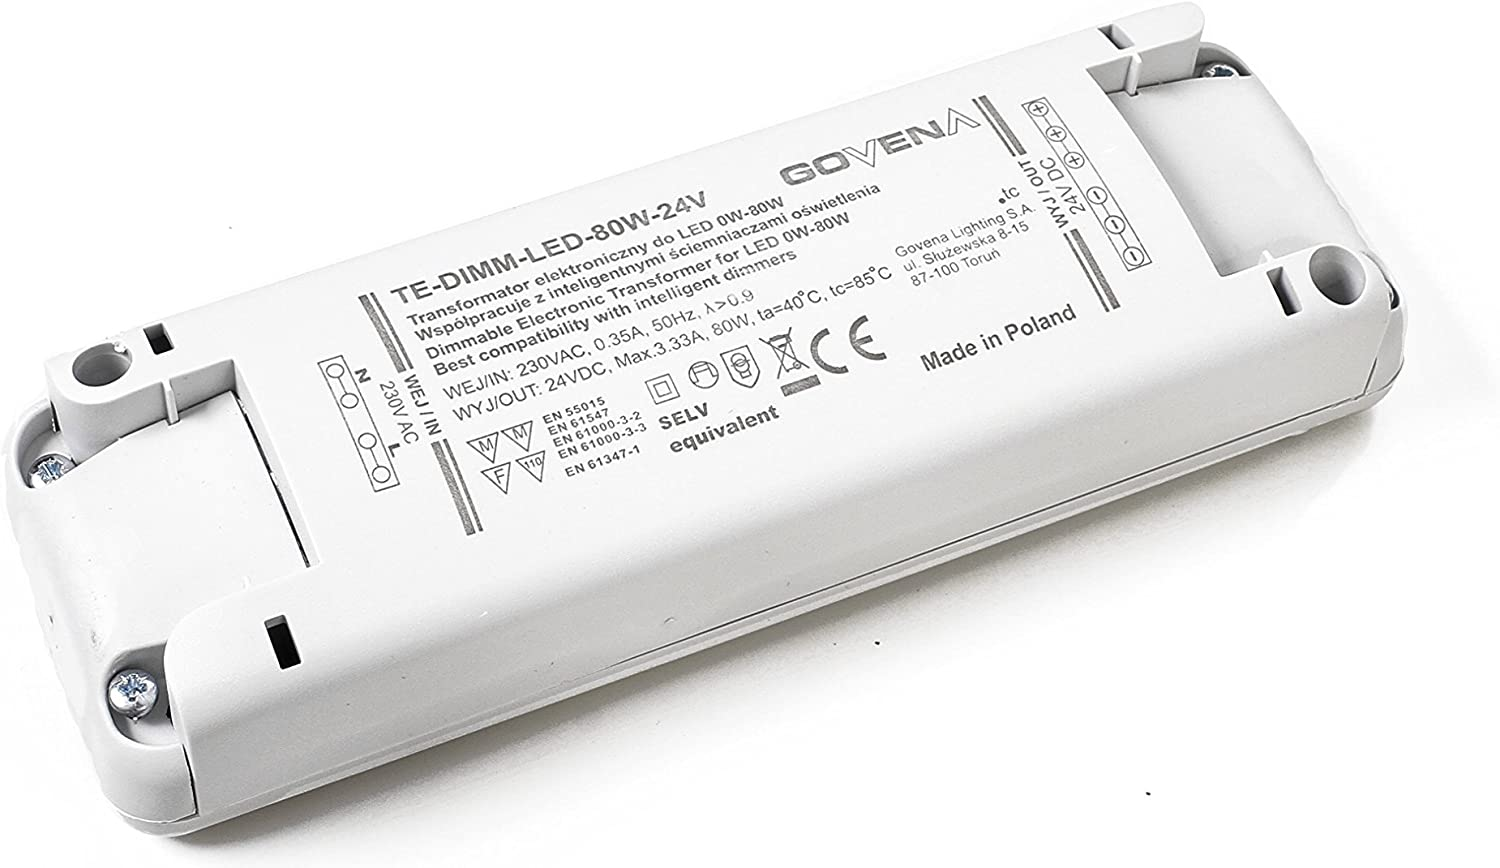 0W-80W 24Vdc Dimmable LED Driver/Electronic Transformer, TE80W-DIMM-LED-24V